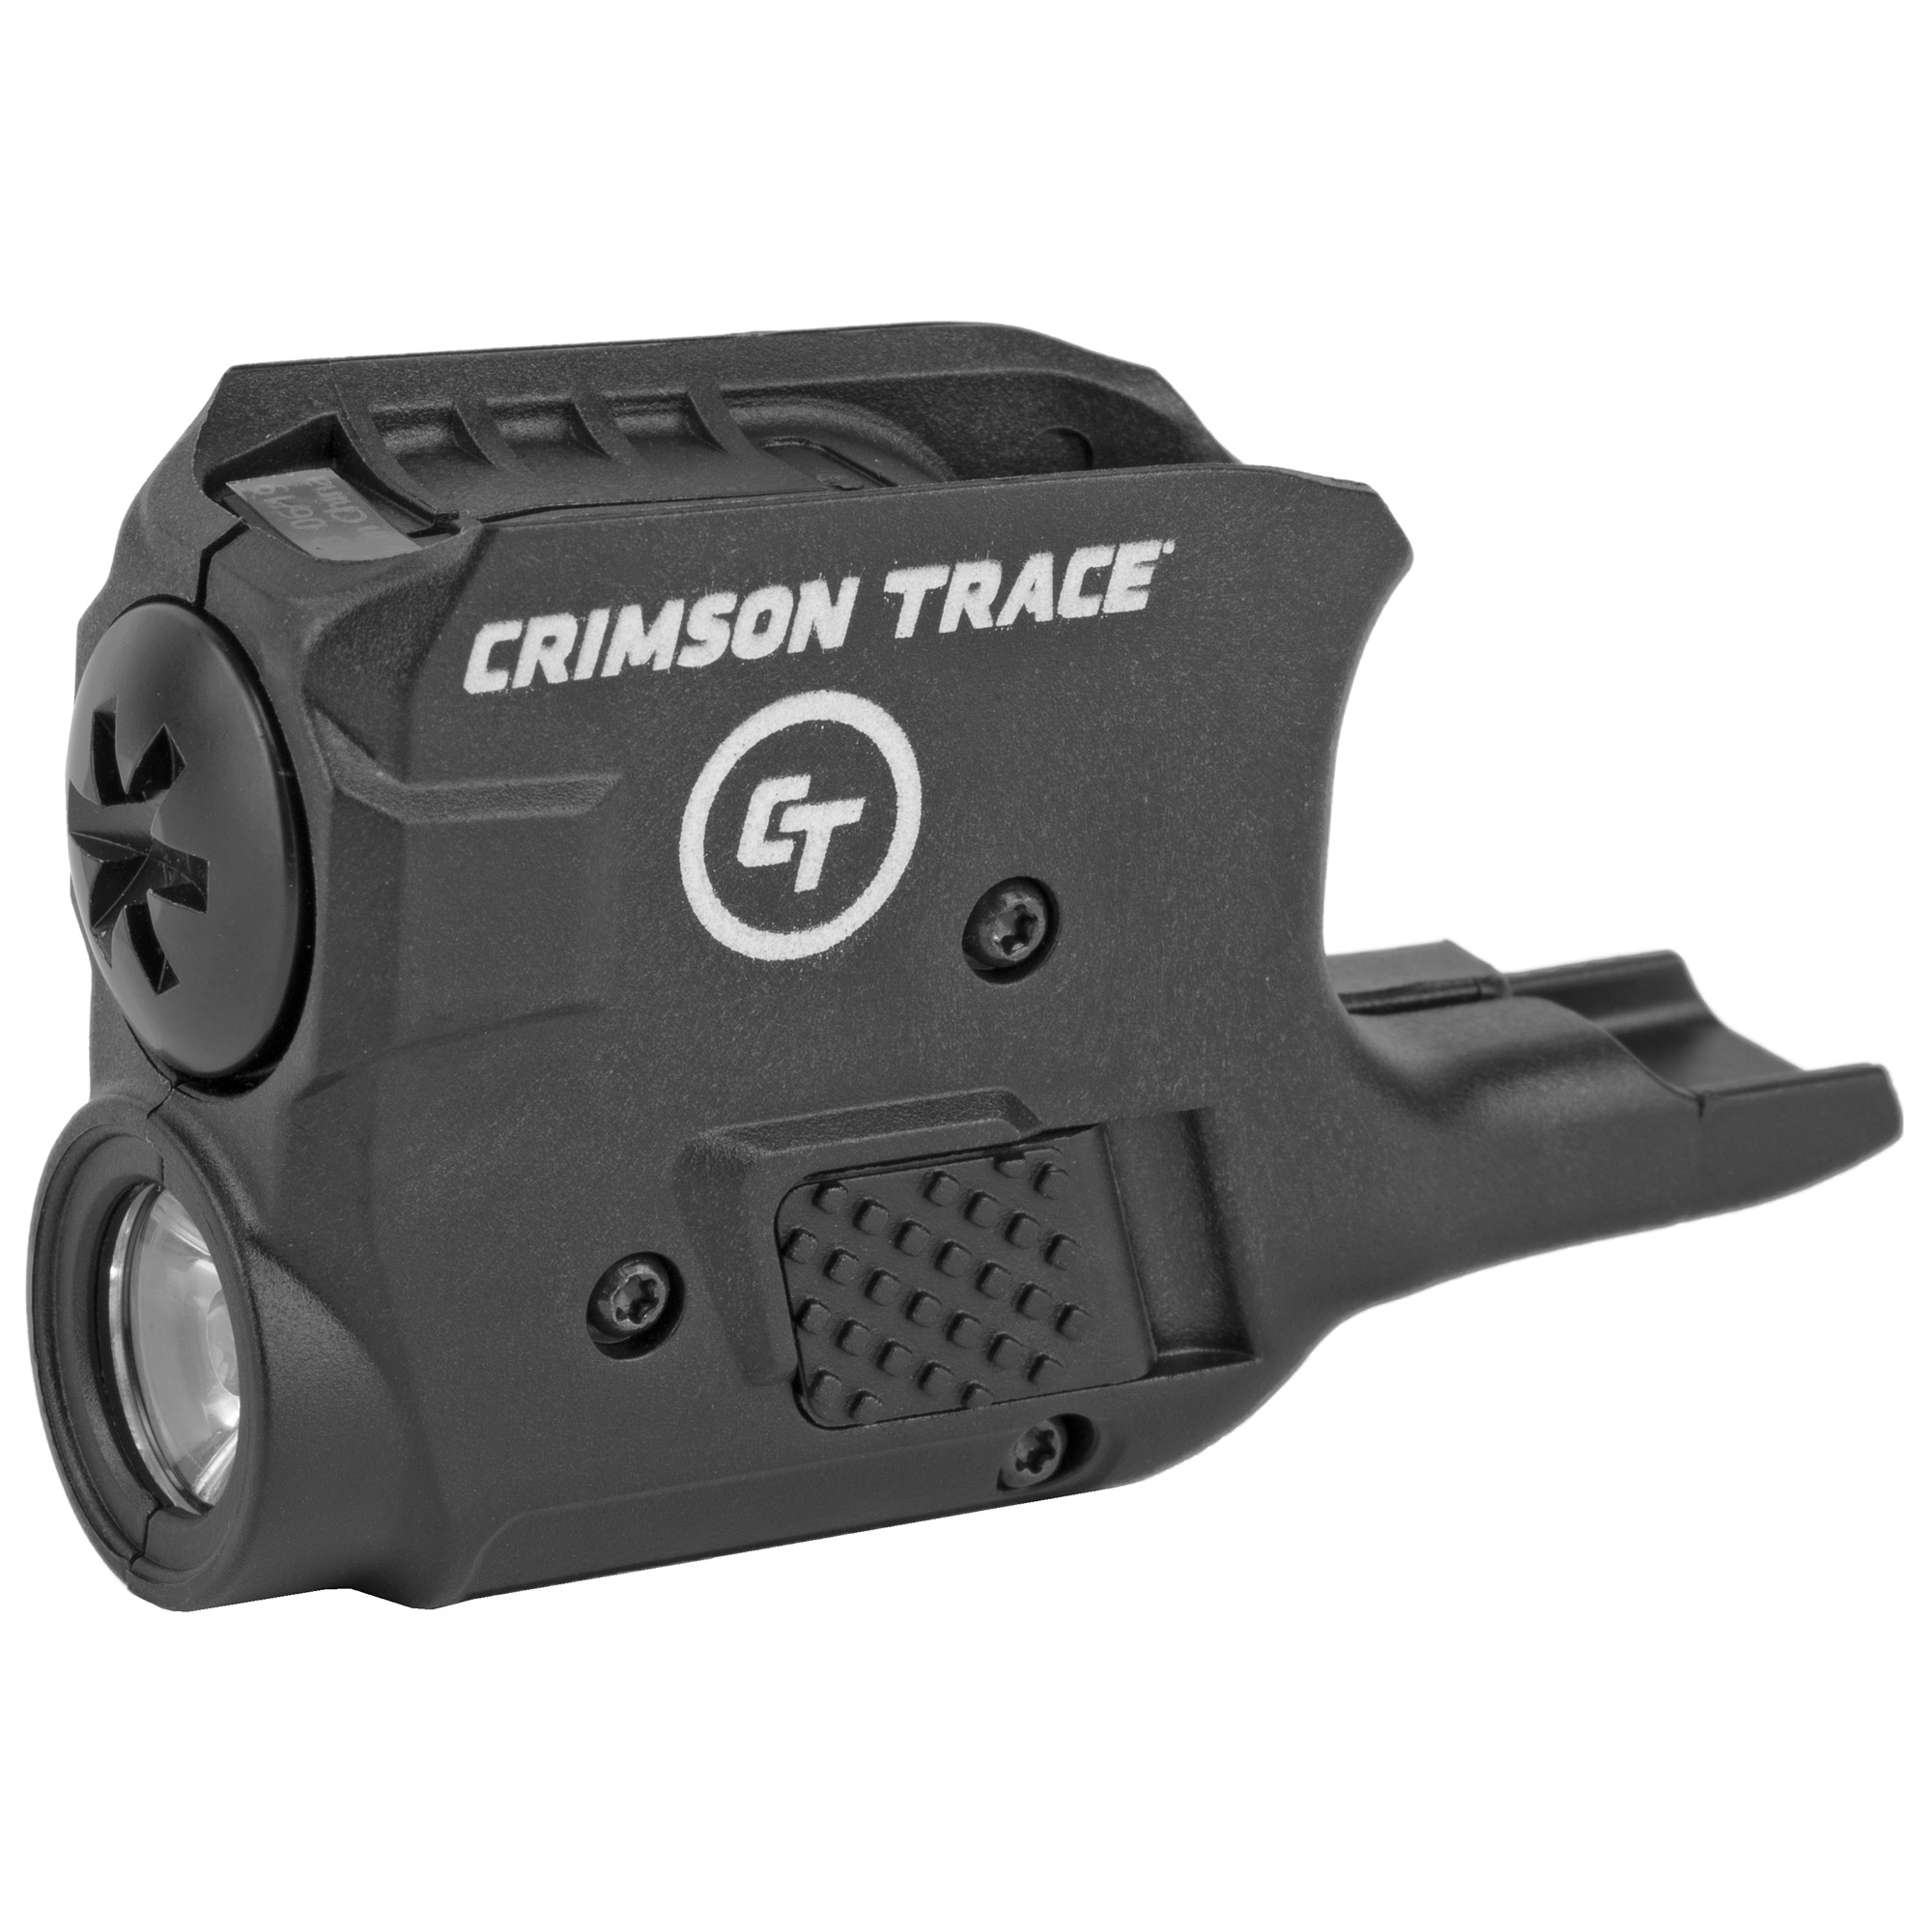 """The LTG-773 Lightguard(TM) is a 110 Lumen LED White Light designed to securely fit around the trigger guard of GLOCK(R) G42"""" G43"""" G43X and G48 pistols. Featuring ambidextrous Instant Activation(TM) with Constant and Momentary modes"""" the LTG-773 offers over one (1) hour of illumination with two (2) 1/3N batteries (included). With ruggedized polymer construction and a rapid change battery cap"""" this tactical light offers effective illumination for G42"""" G43"""" G43X and G48 owners. A best-in-class weapon mounted light from the brand you trust for personal protection optics."""